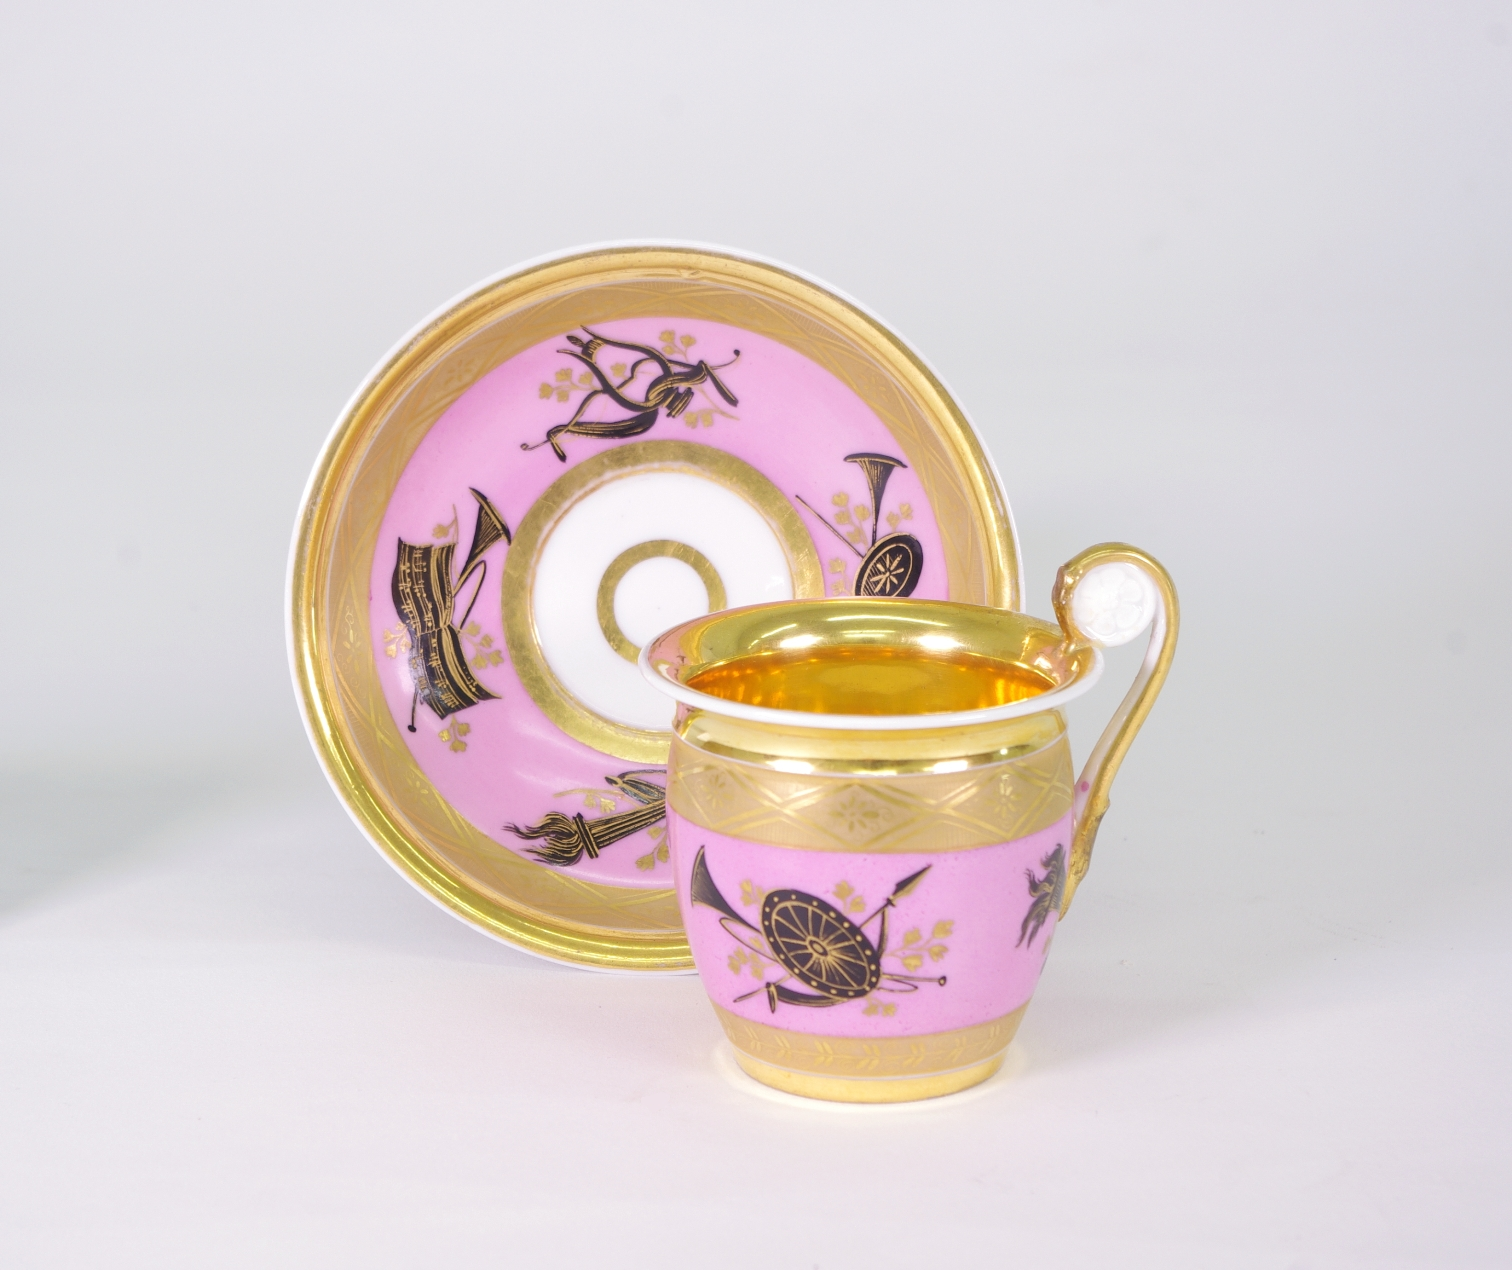 View 8: Popov Cup and Saucer, c. 1820